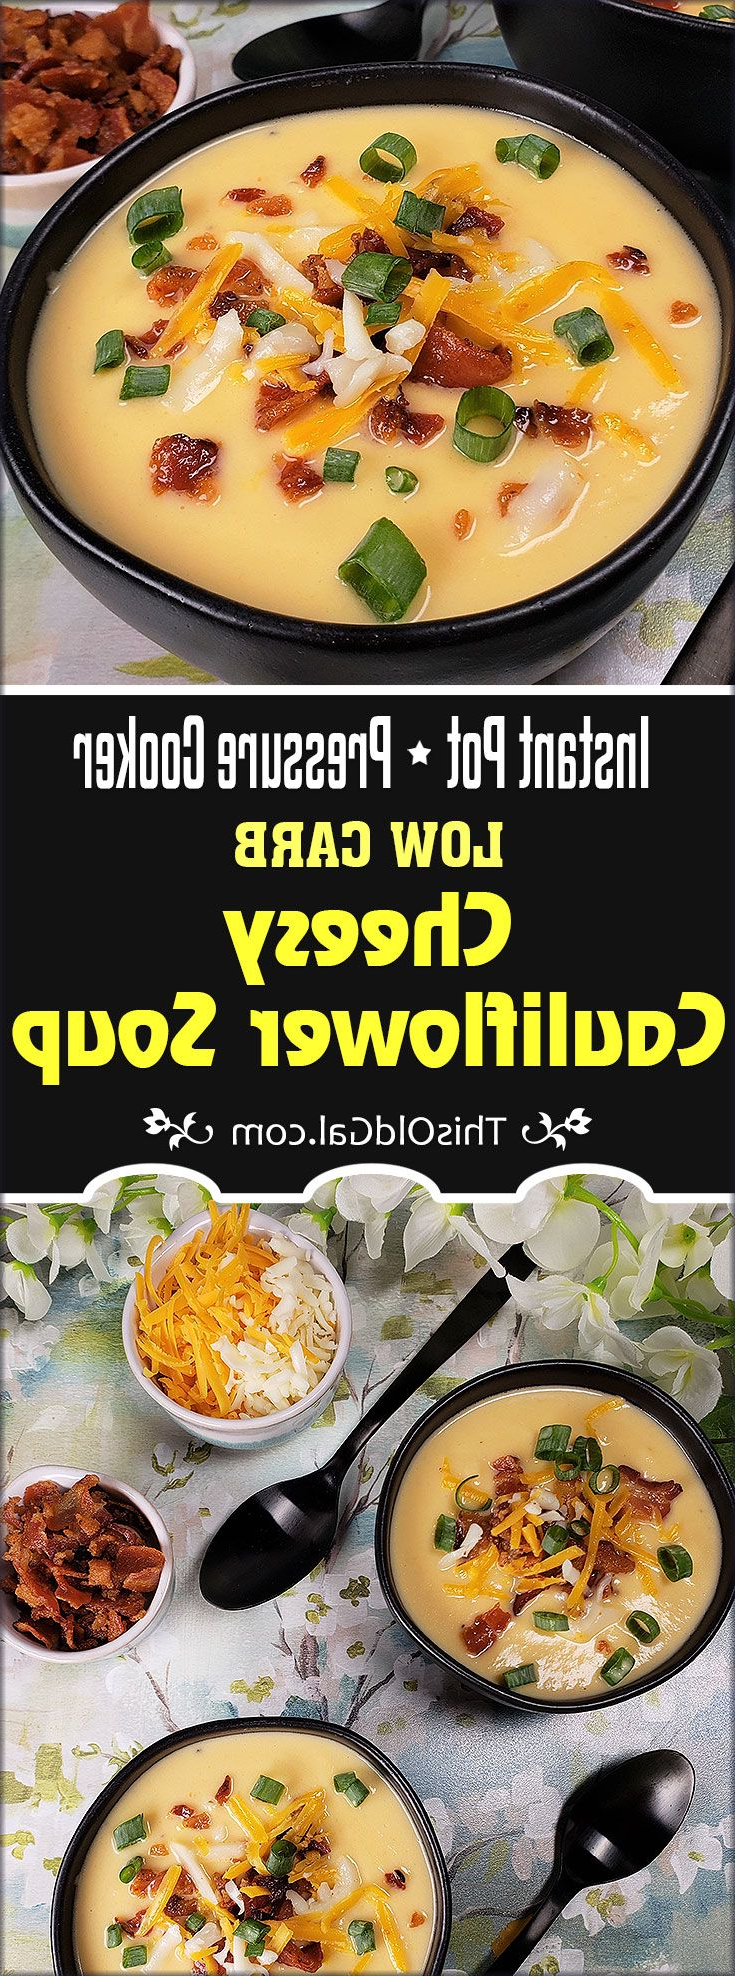 Pressure Cooker Keto Cheese Cauliflower Soup Image Low